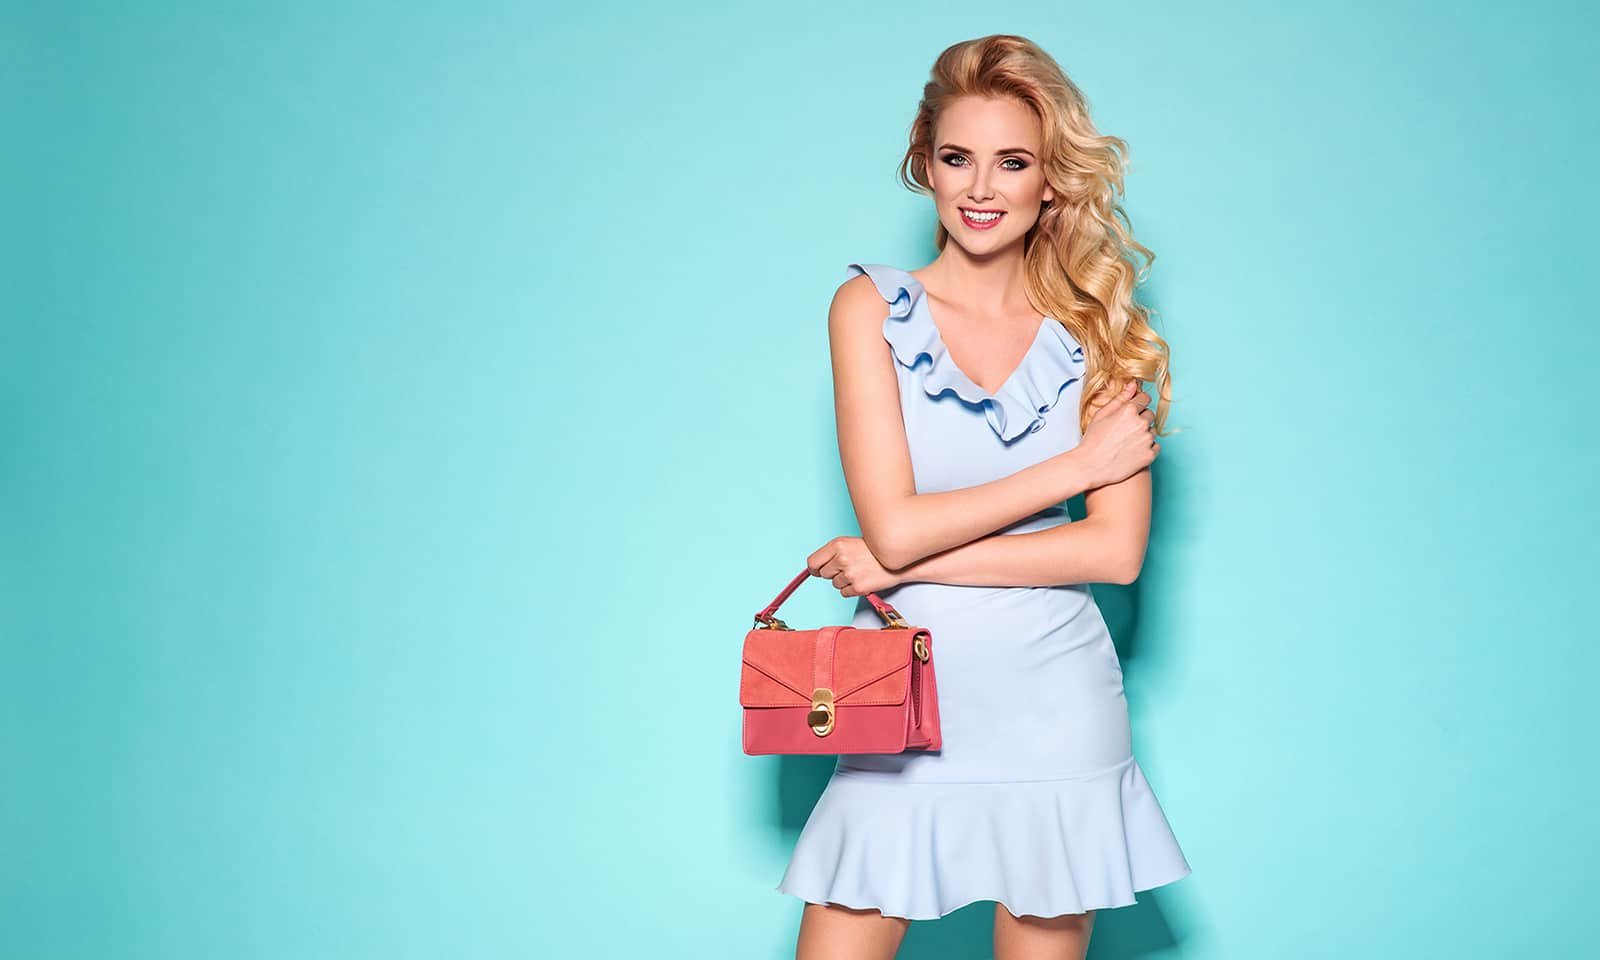 The Best Colors To Wear To Match Your Blonde Hair Viva Glam Magazine